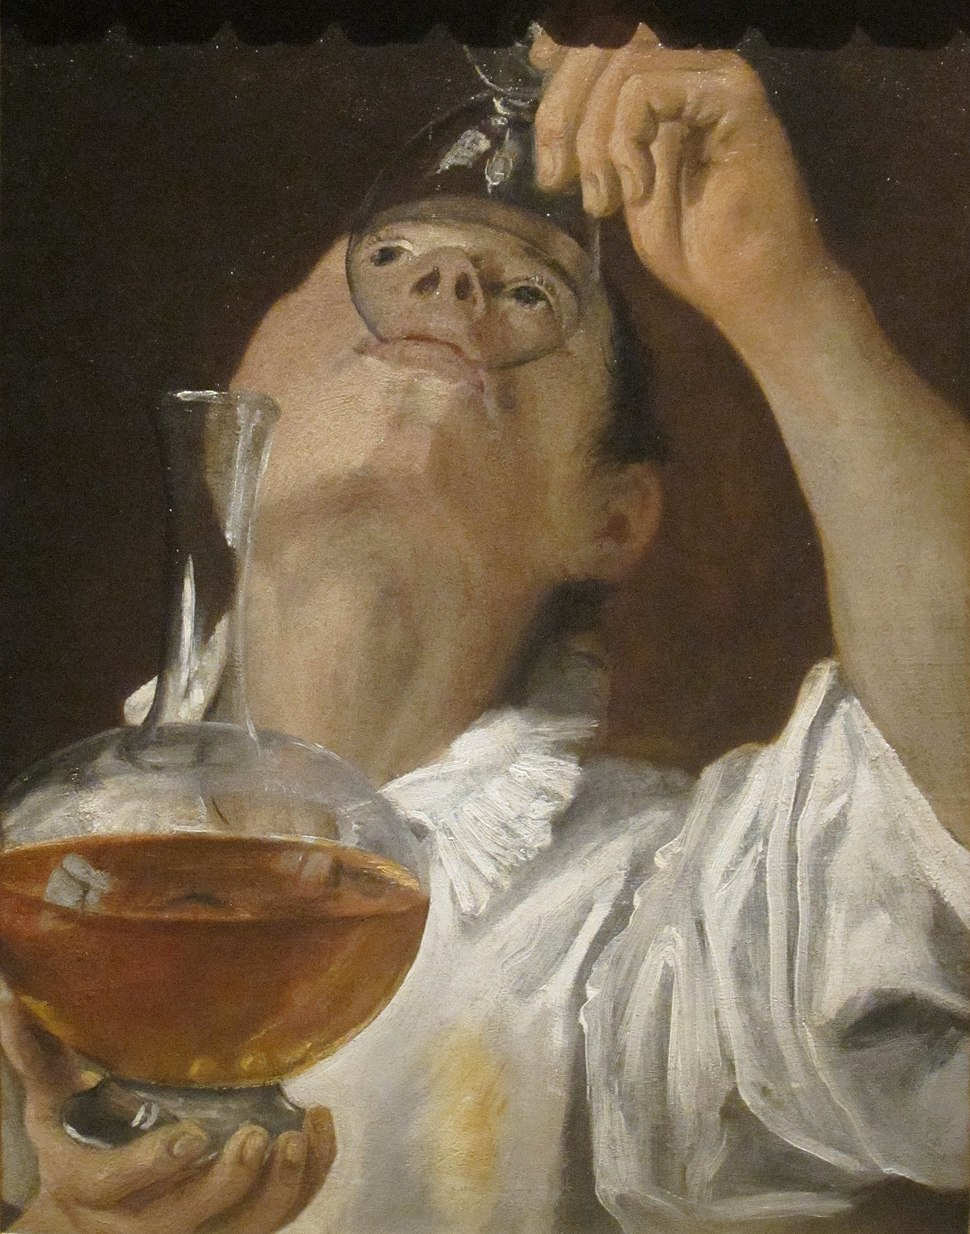 'Boy Drinking' by Annibale Carracci, 1582-83